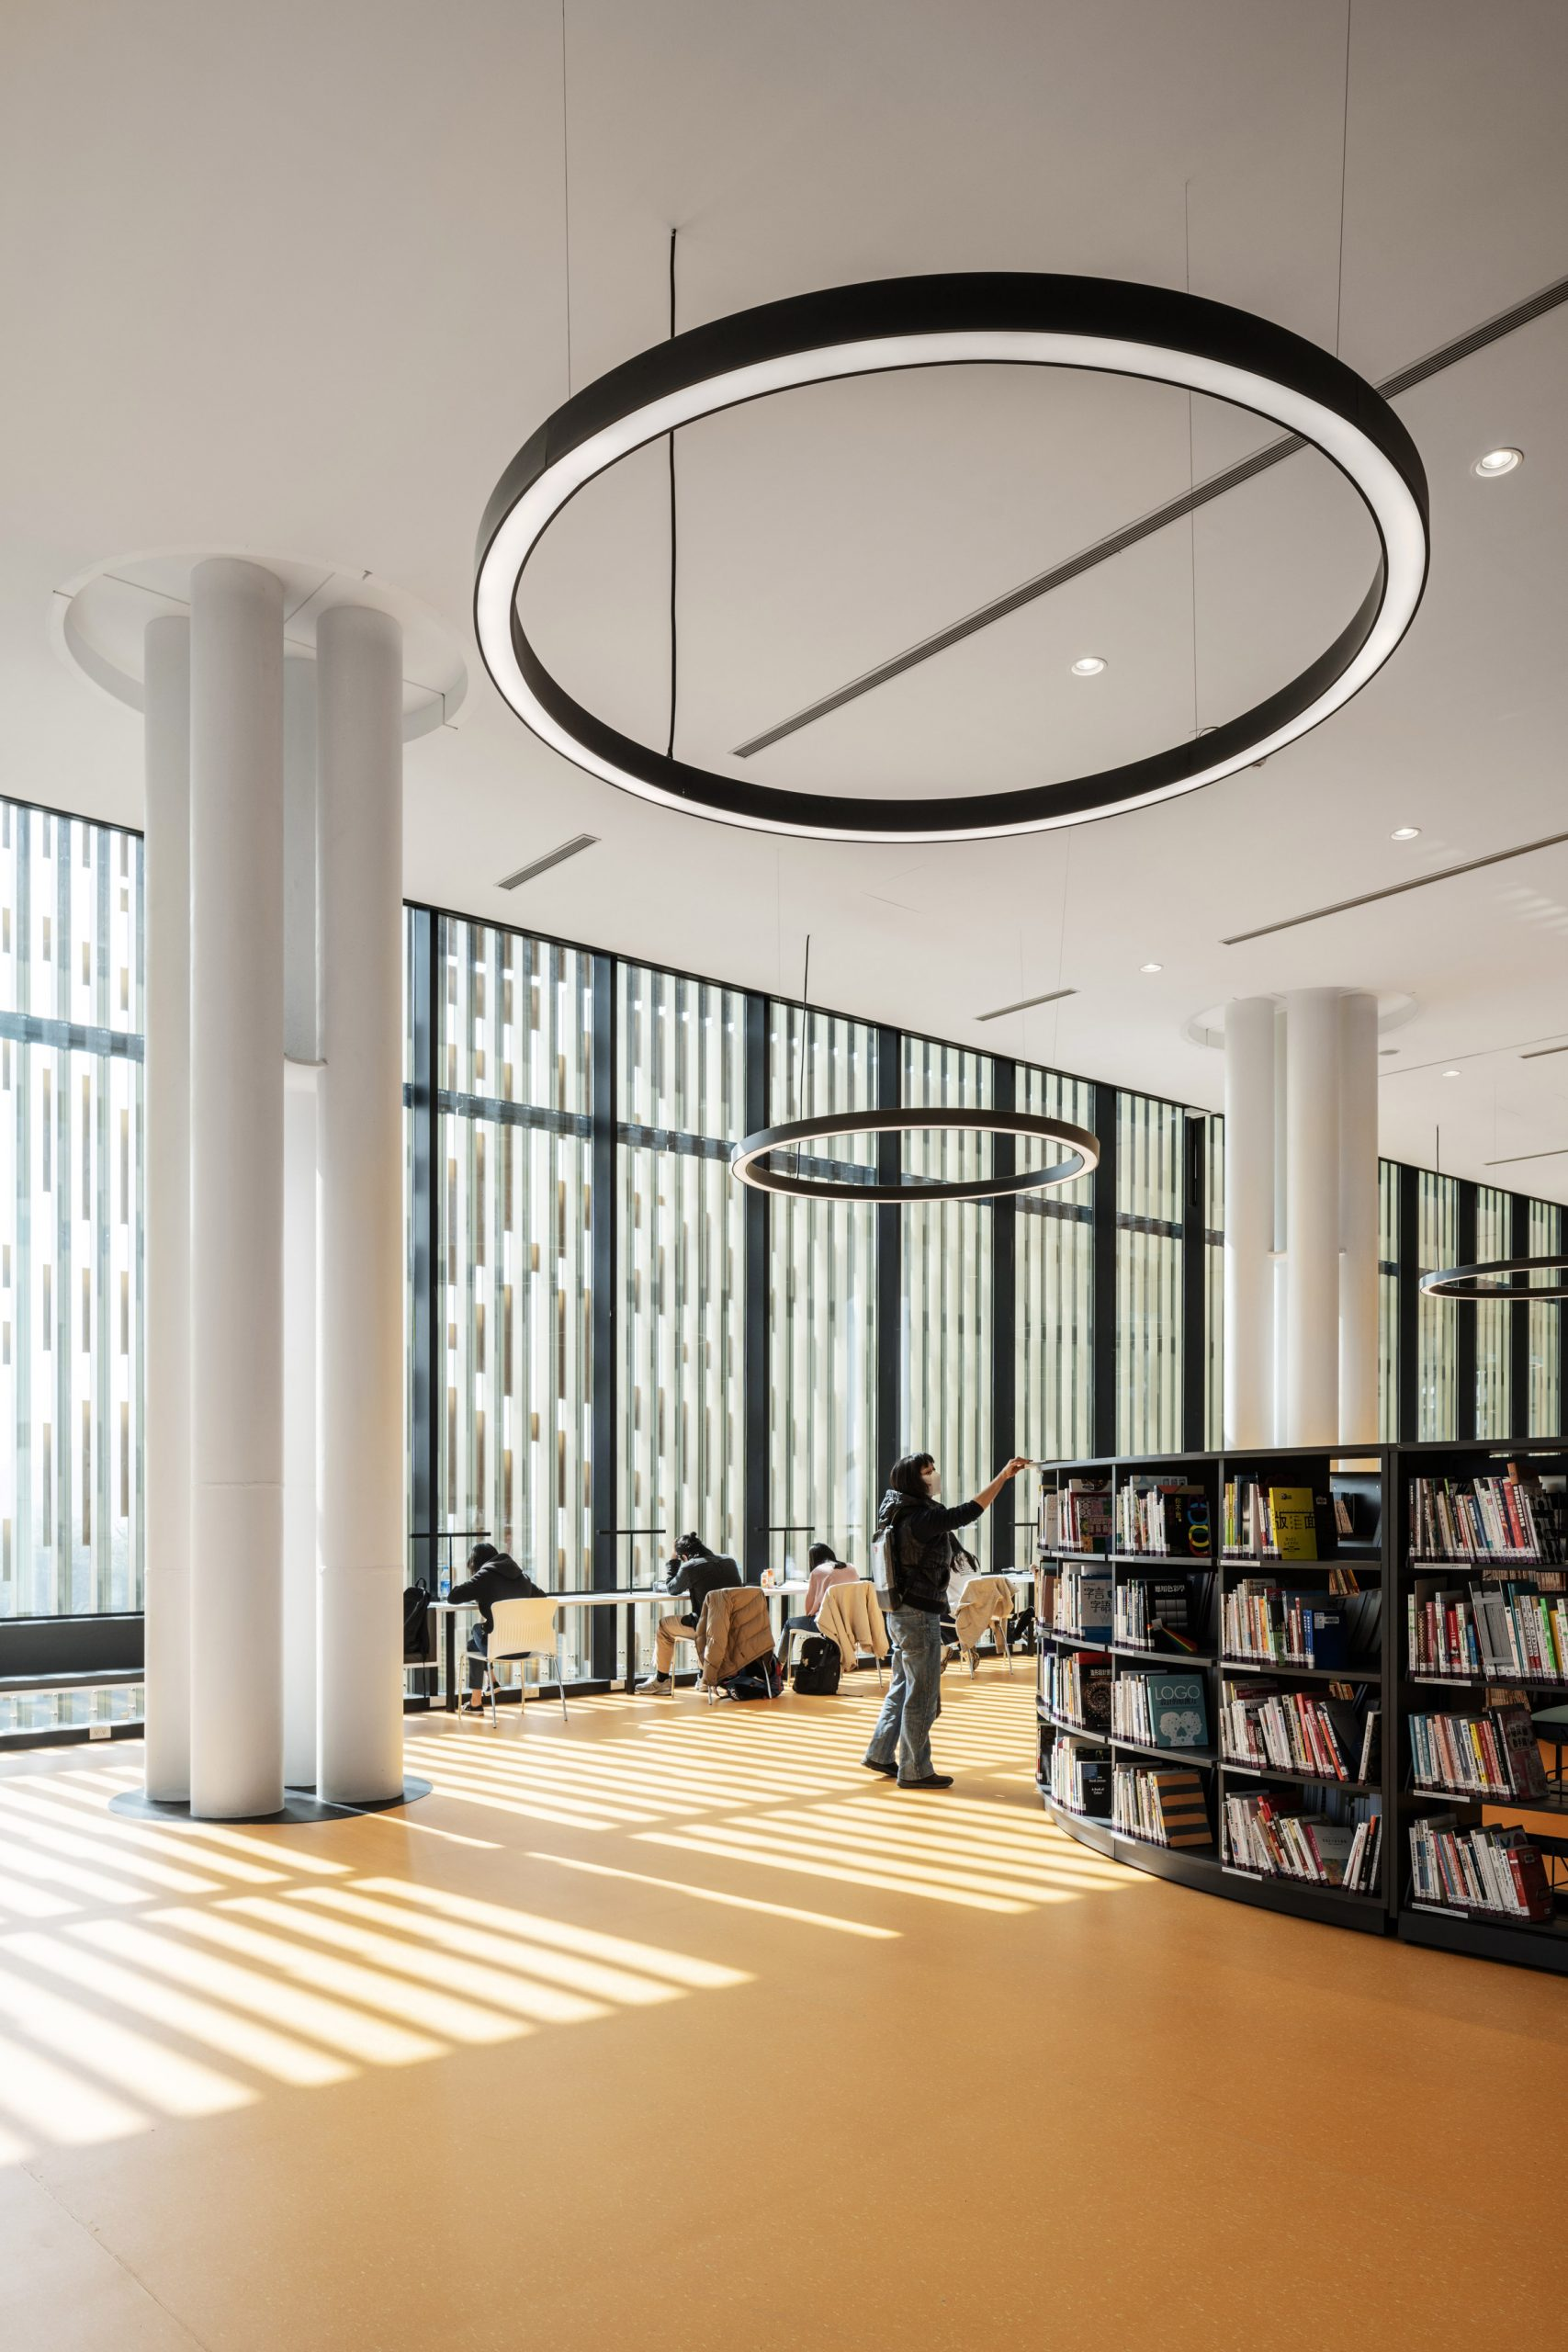 A double-height library with a bright yellow floor